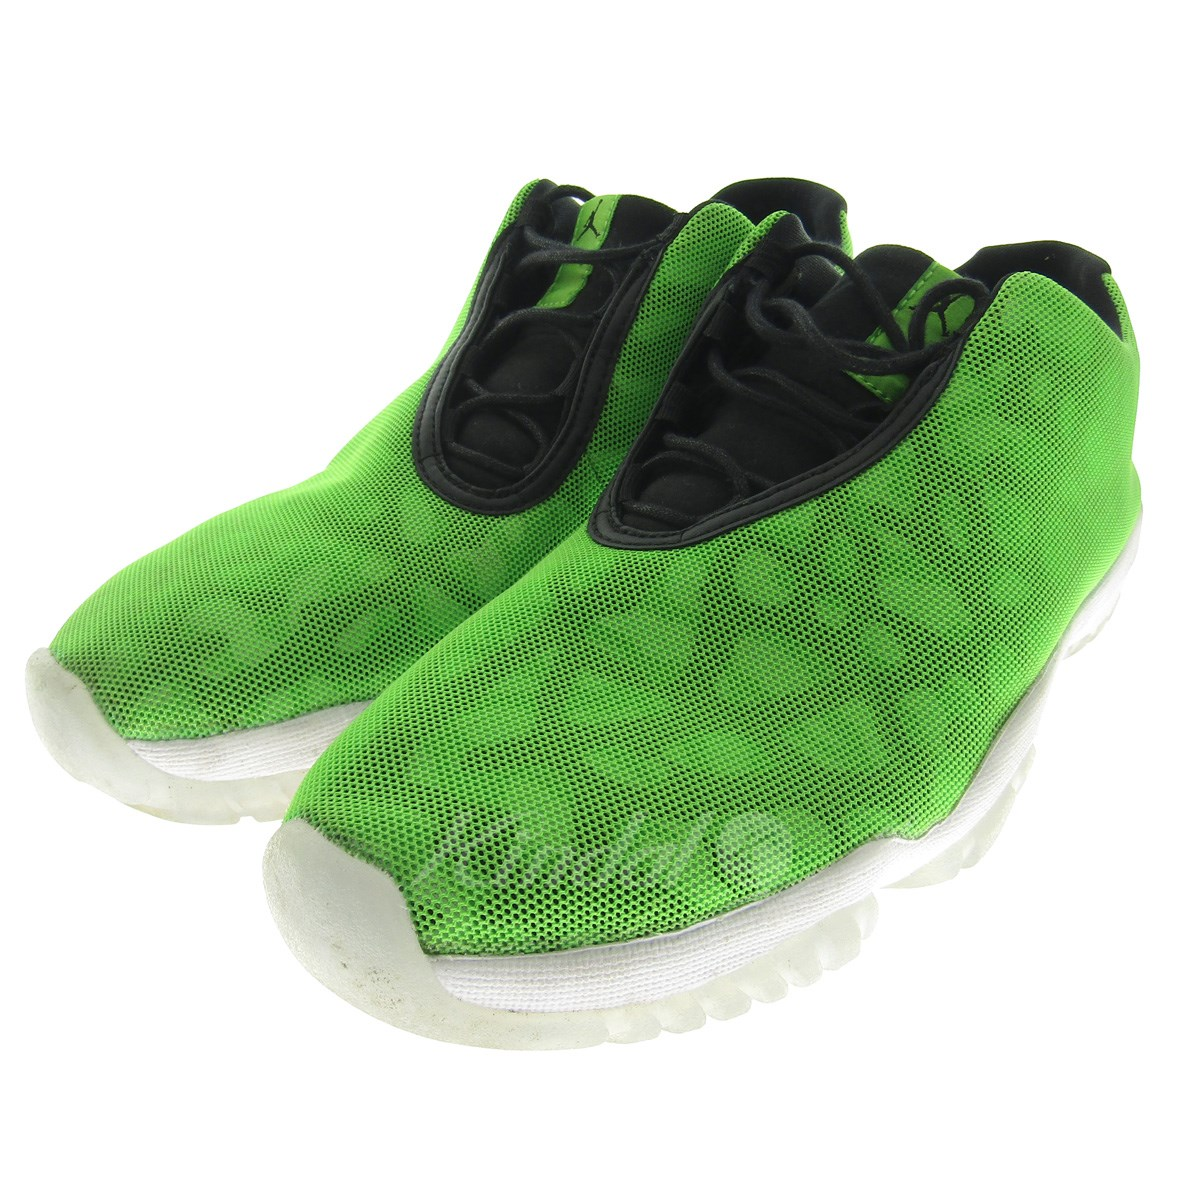 8e46fa81d7514b kindal  NIKE AIR JORDAN FUTURE LOW sneakers green size  26. 5 (Nike ...